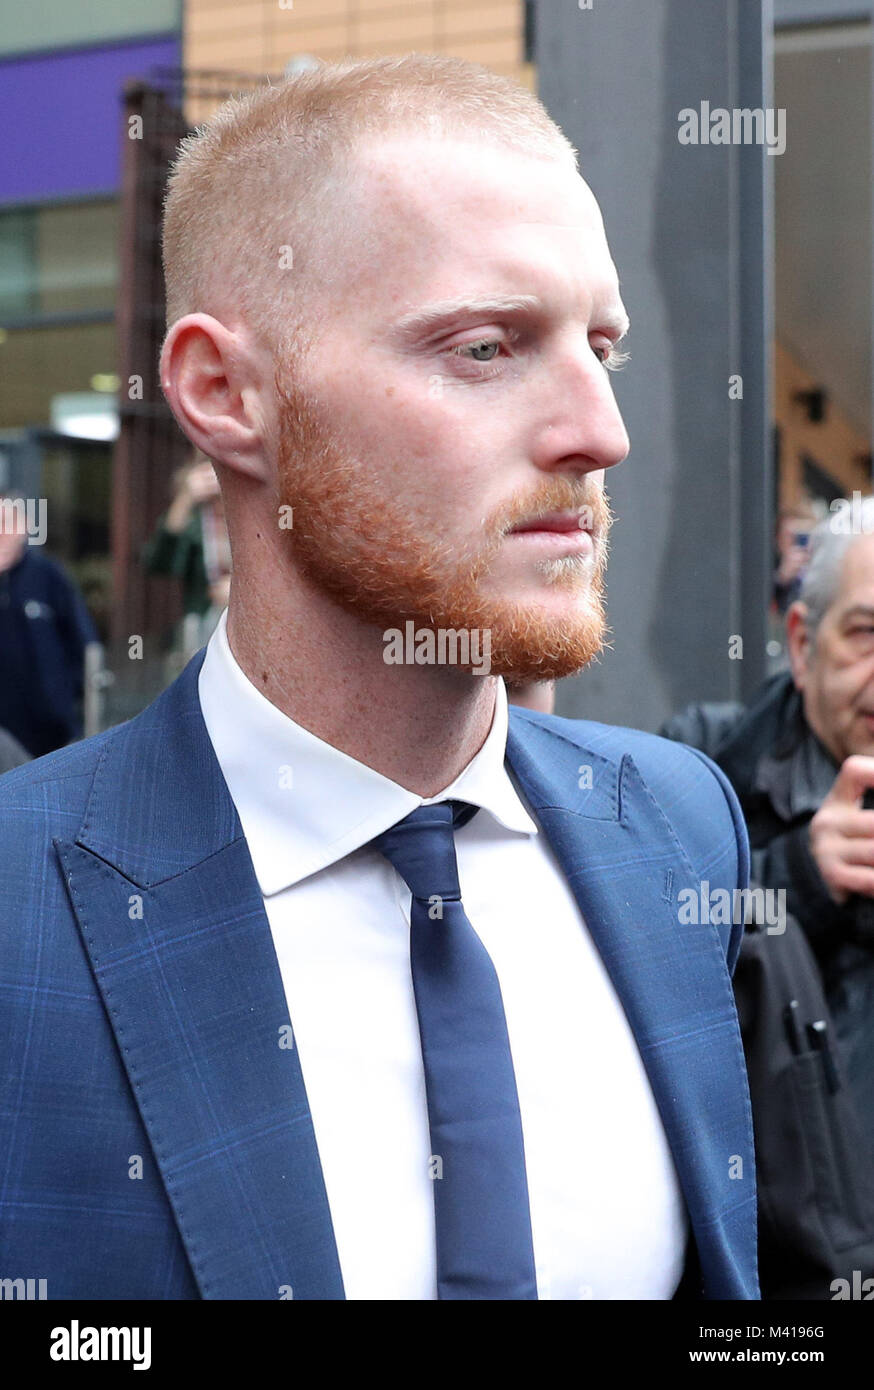 England and Durham cricketer Ben Stokes, 26, leaves Bristol Magistrates' Court where he was told he will face - Stock Image